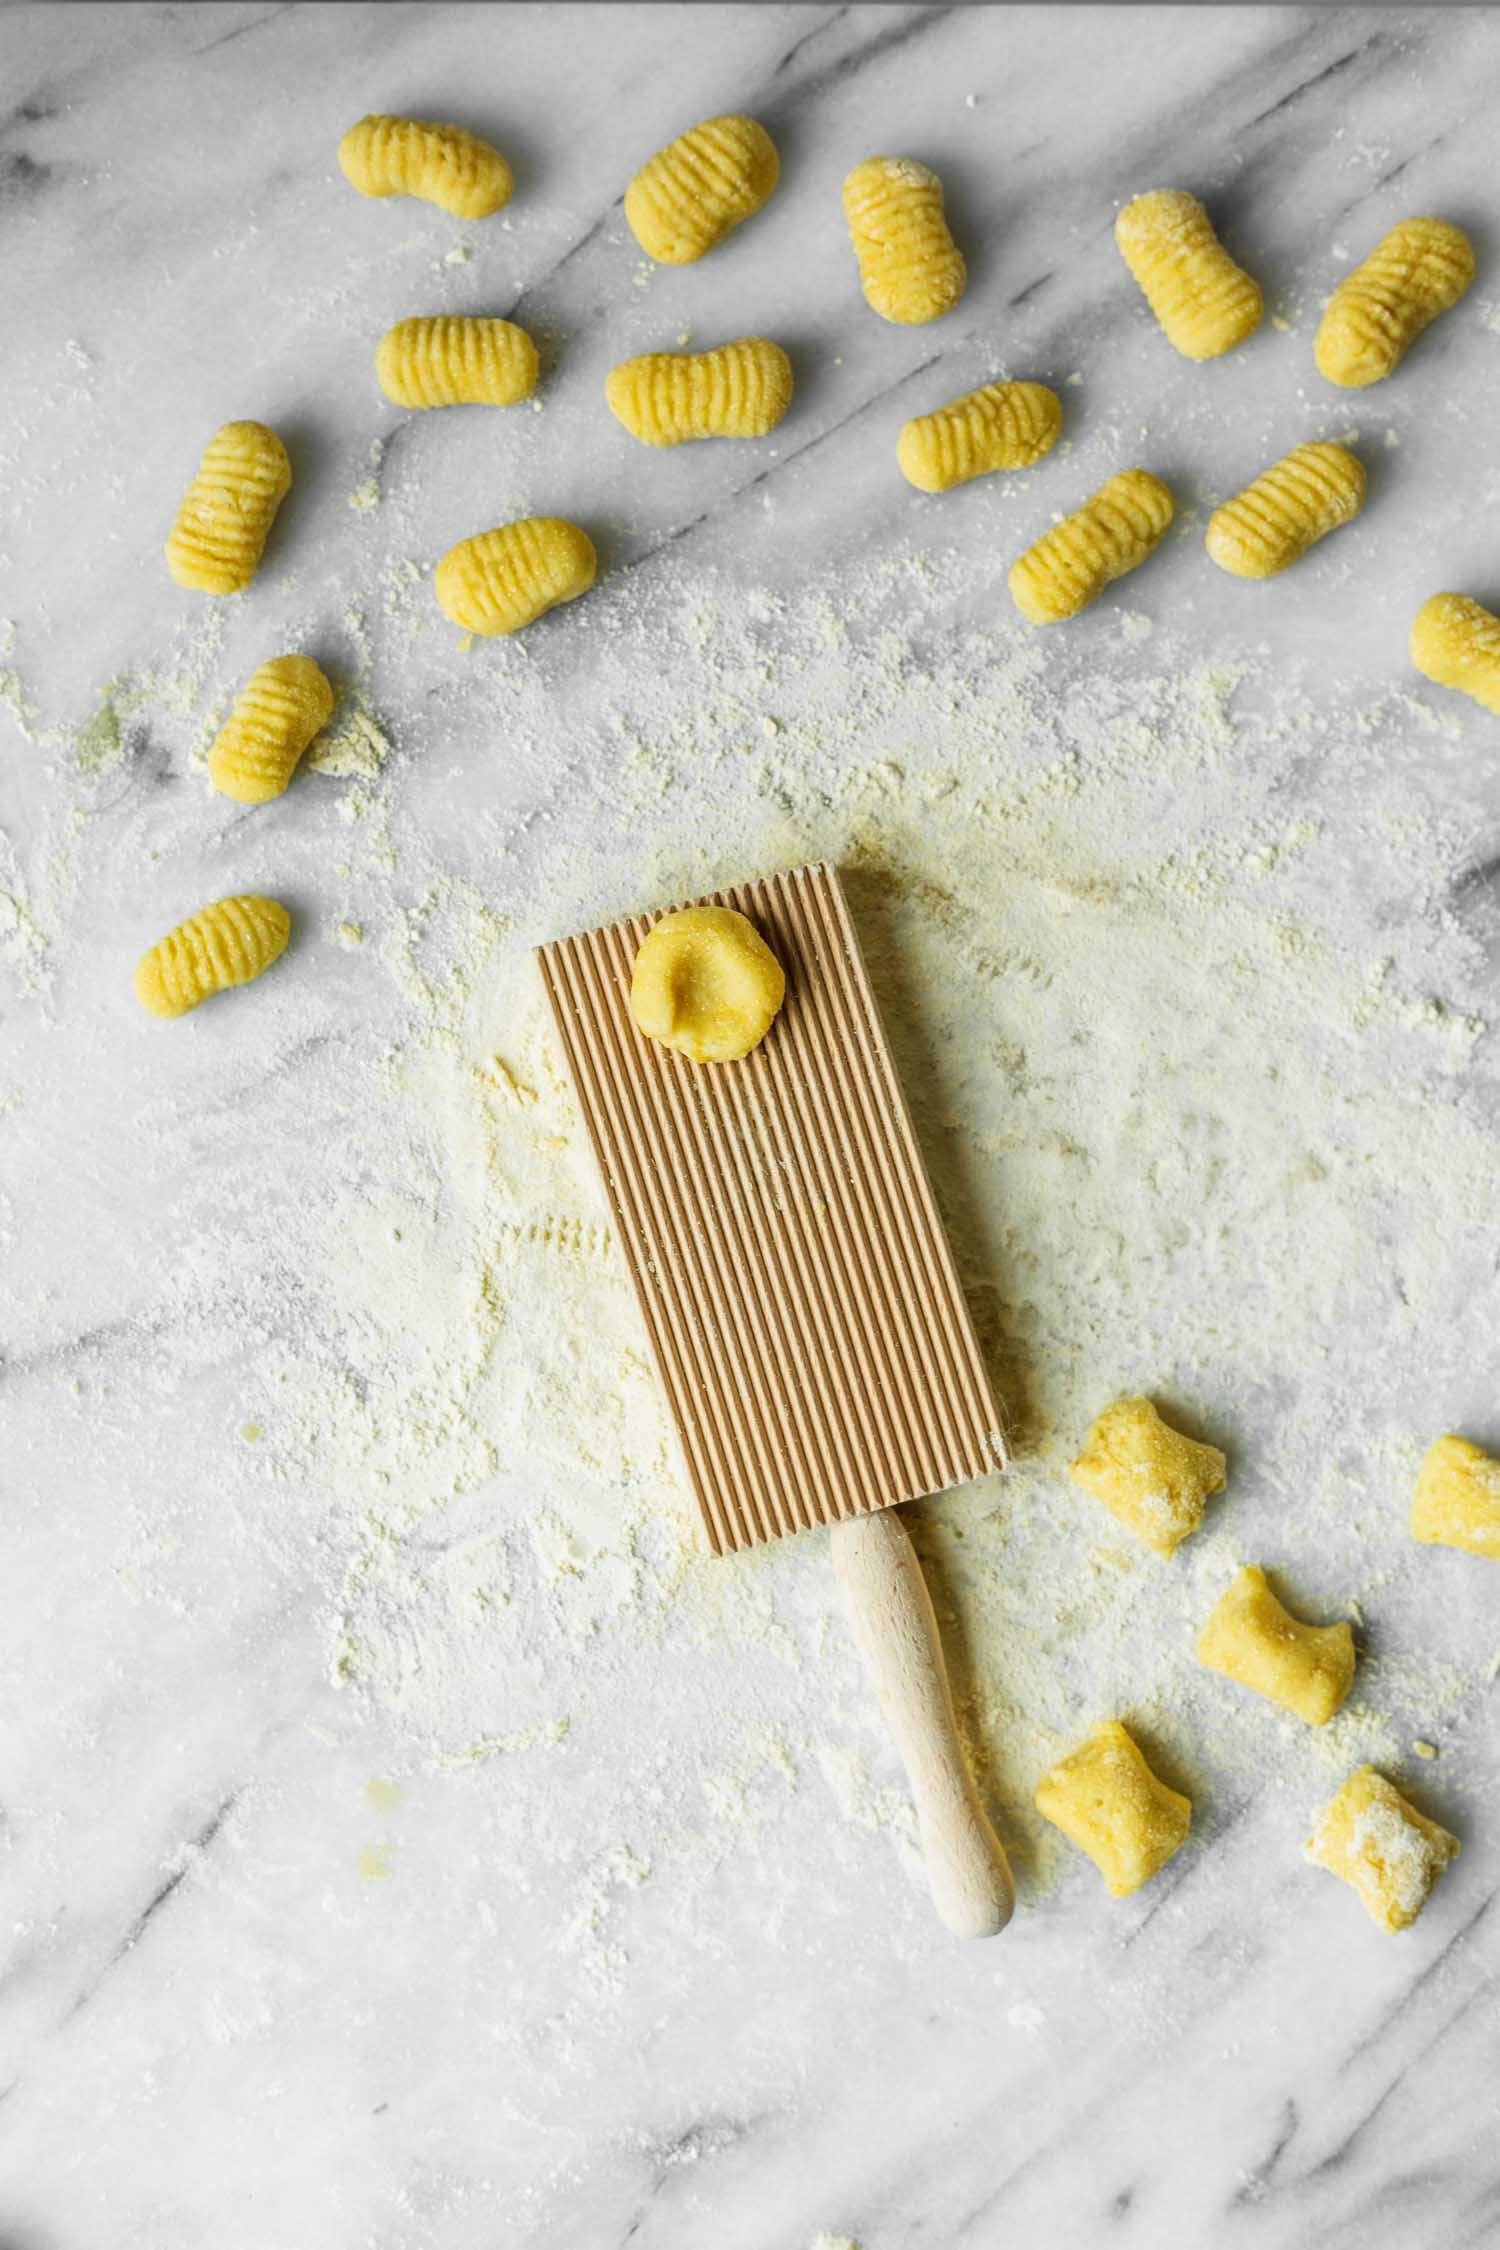 Gluten-free Dairy-free Gnocchi Recipe from  The Plantpower Way: Italia Cookbook  by Julie Piatt and Rich Roll. Photo by Kari of Beautiful Ingredient.